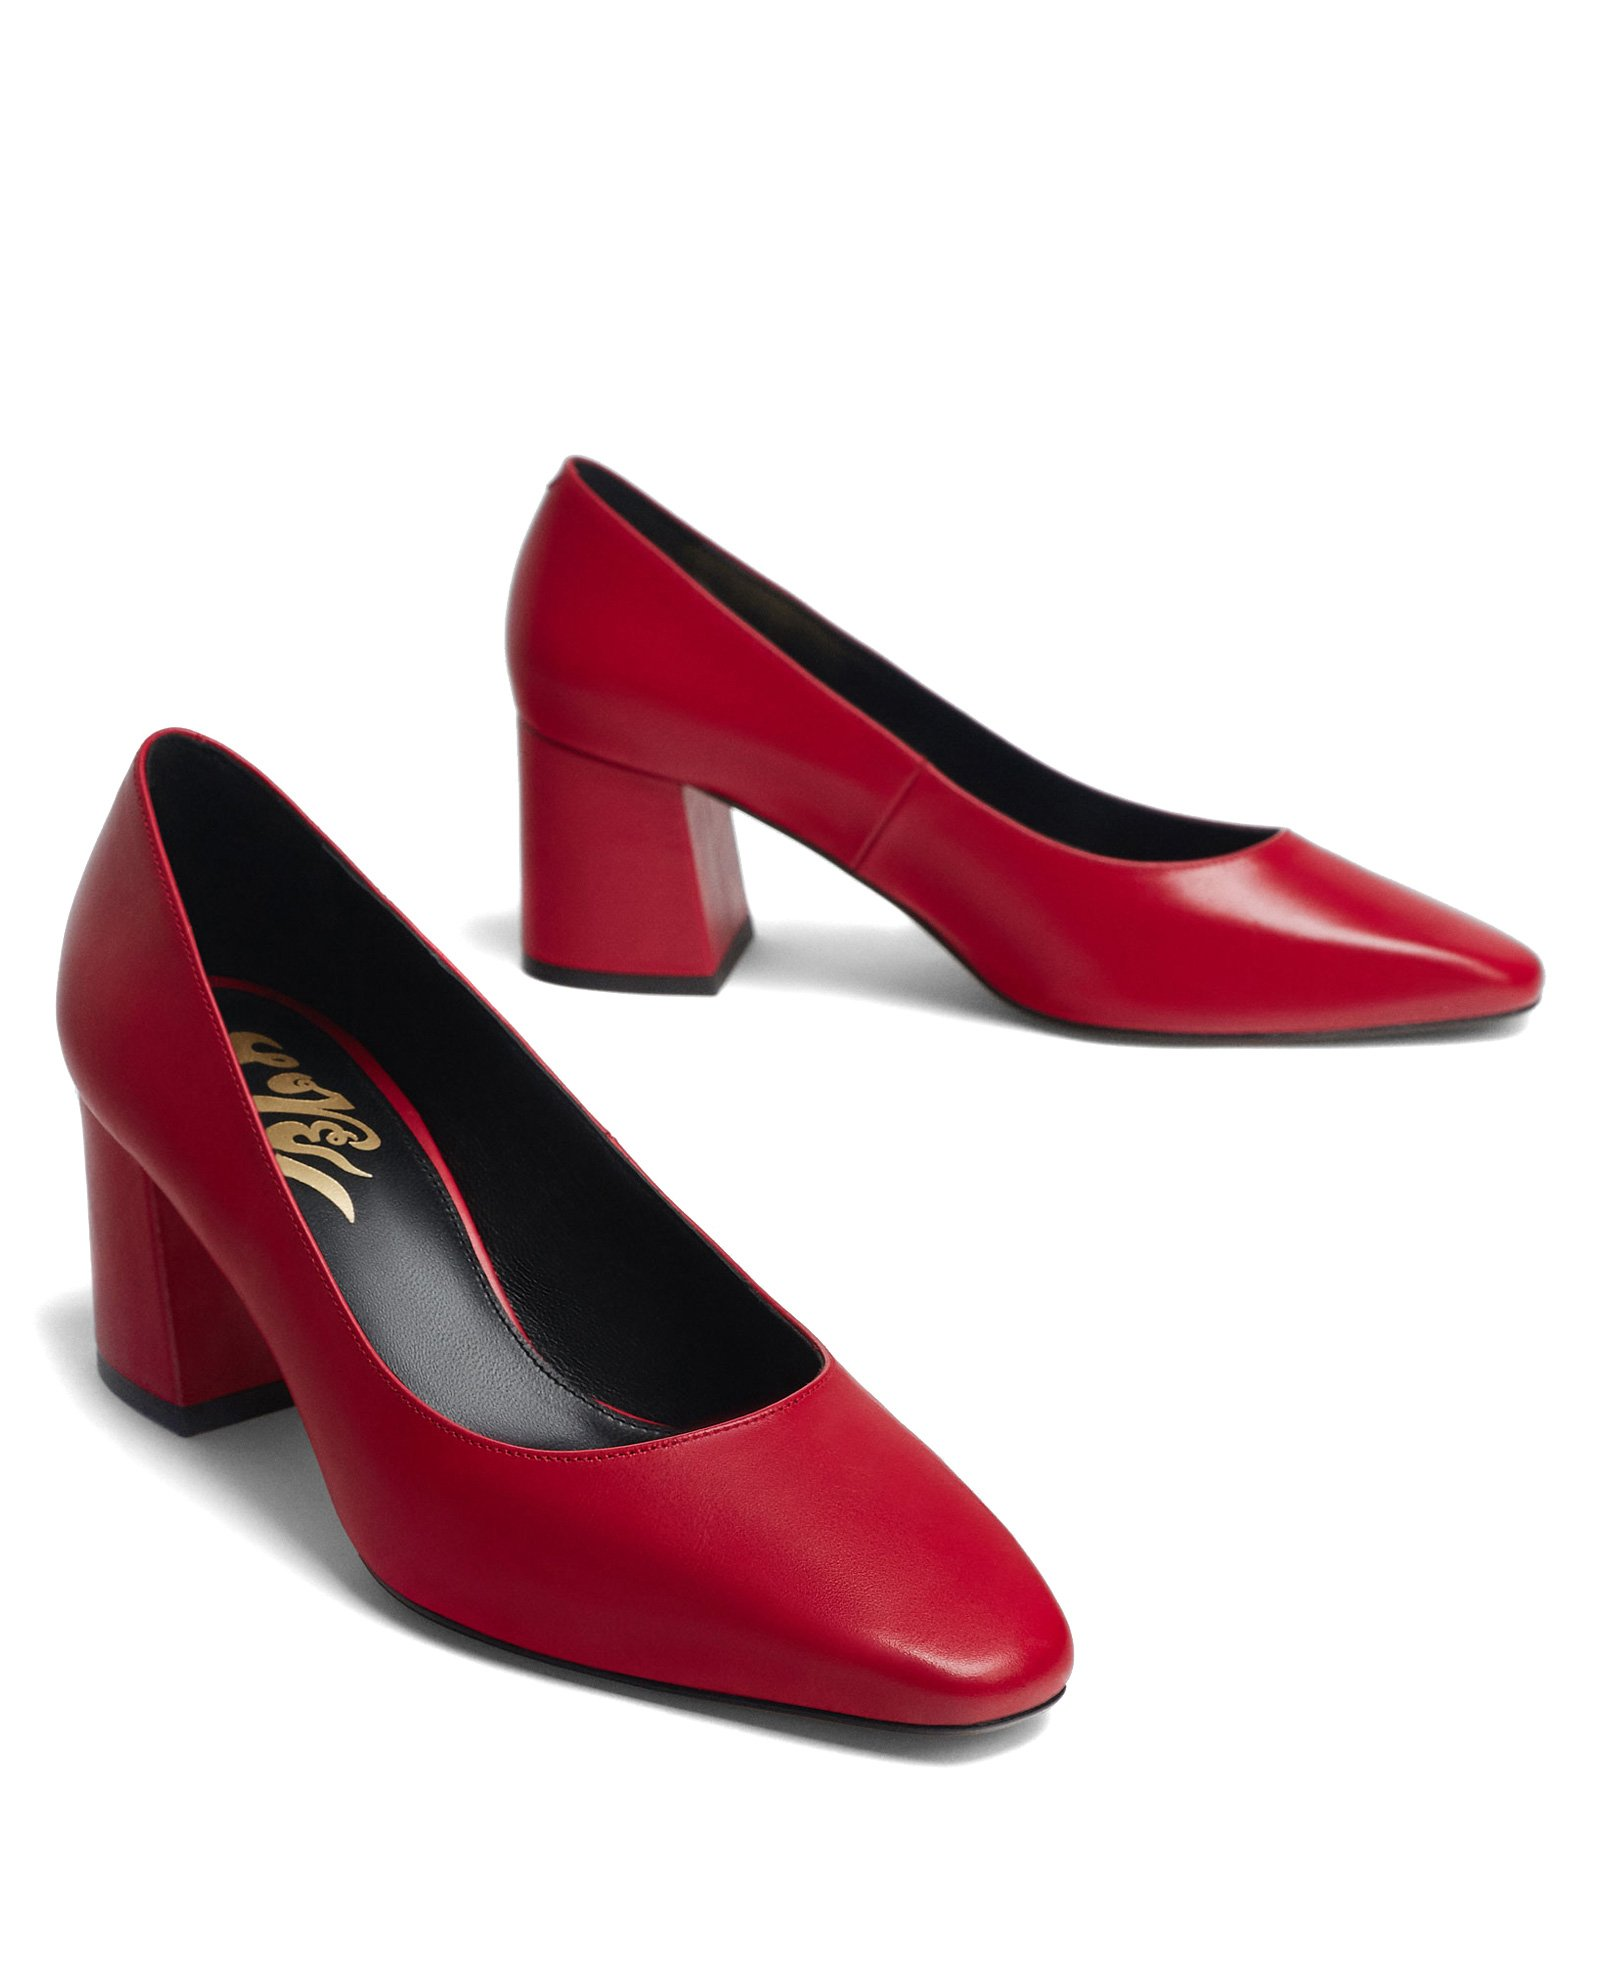 Uterque Women Red leather love high heel court shoes 4143/351 (40 EU | 9 US | 7 UK) by Uterque (Image #2)